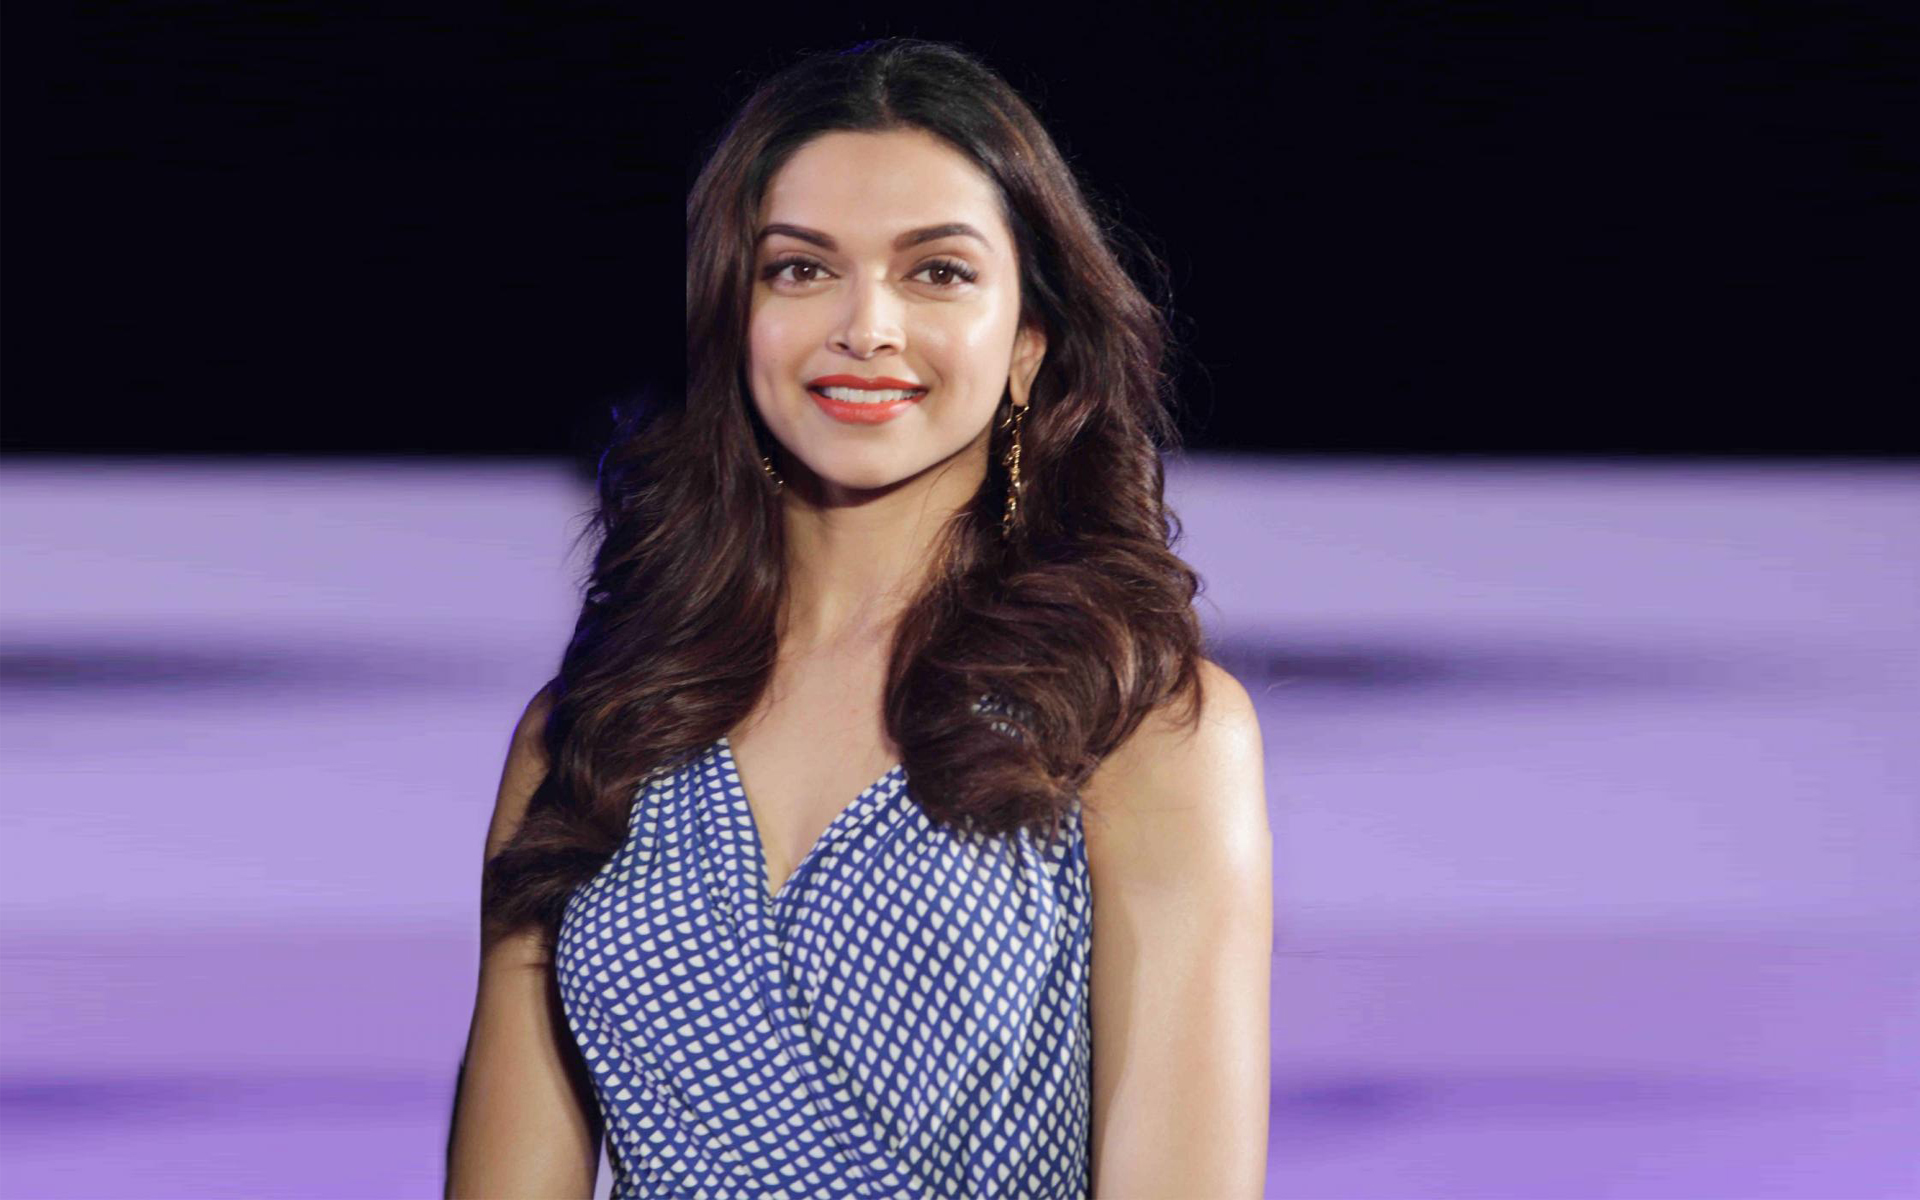 deepika padukone cute, hd indian celebrities, 4k wallpapers, images